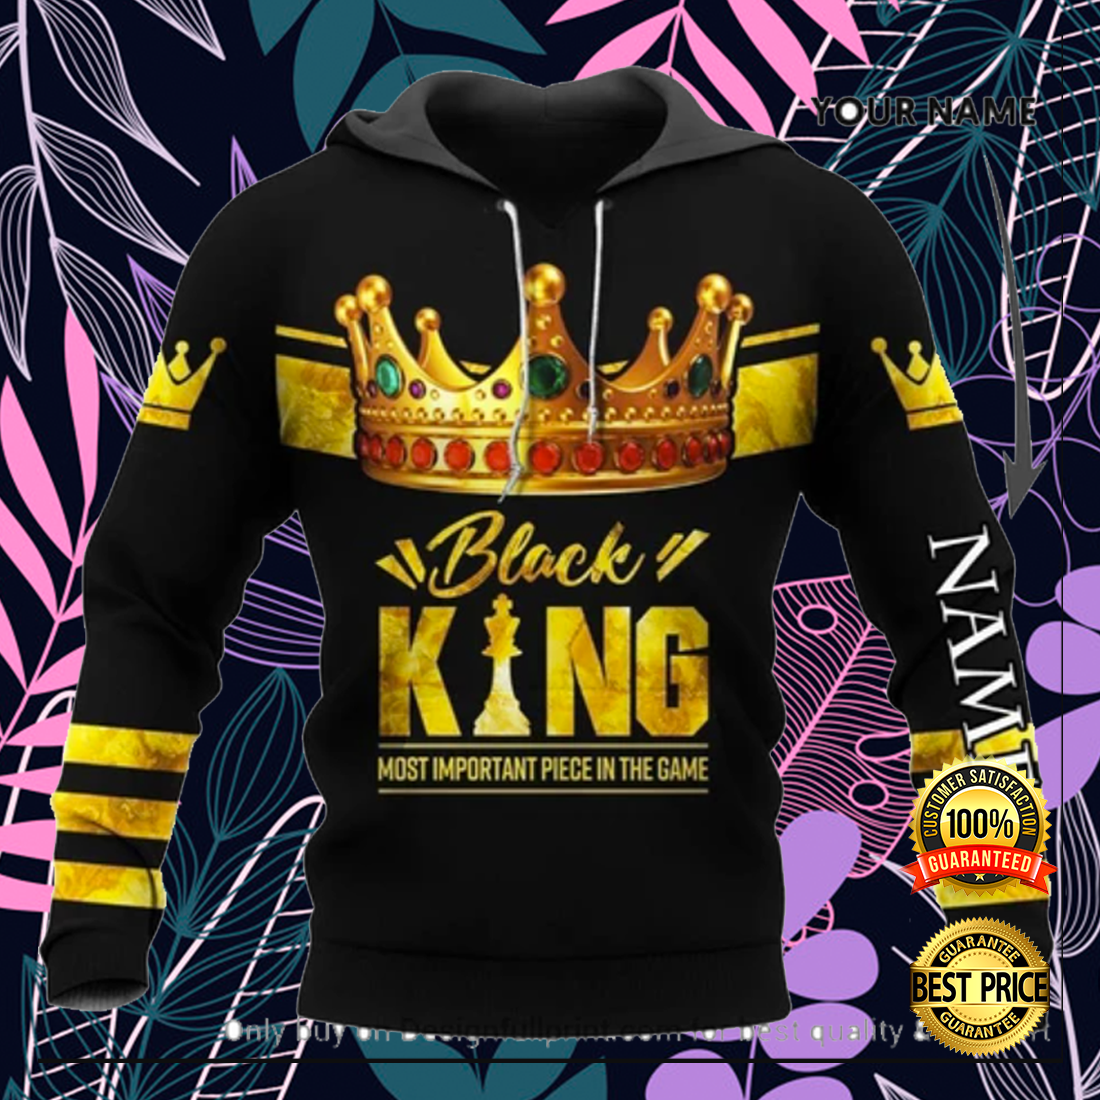 Black king most important piece in the game all over printed 3D hoodie 1